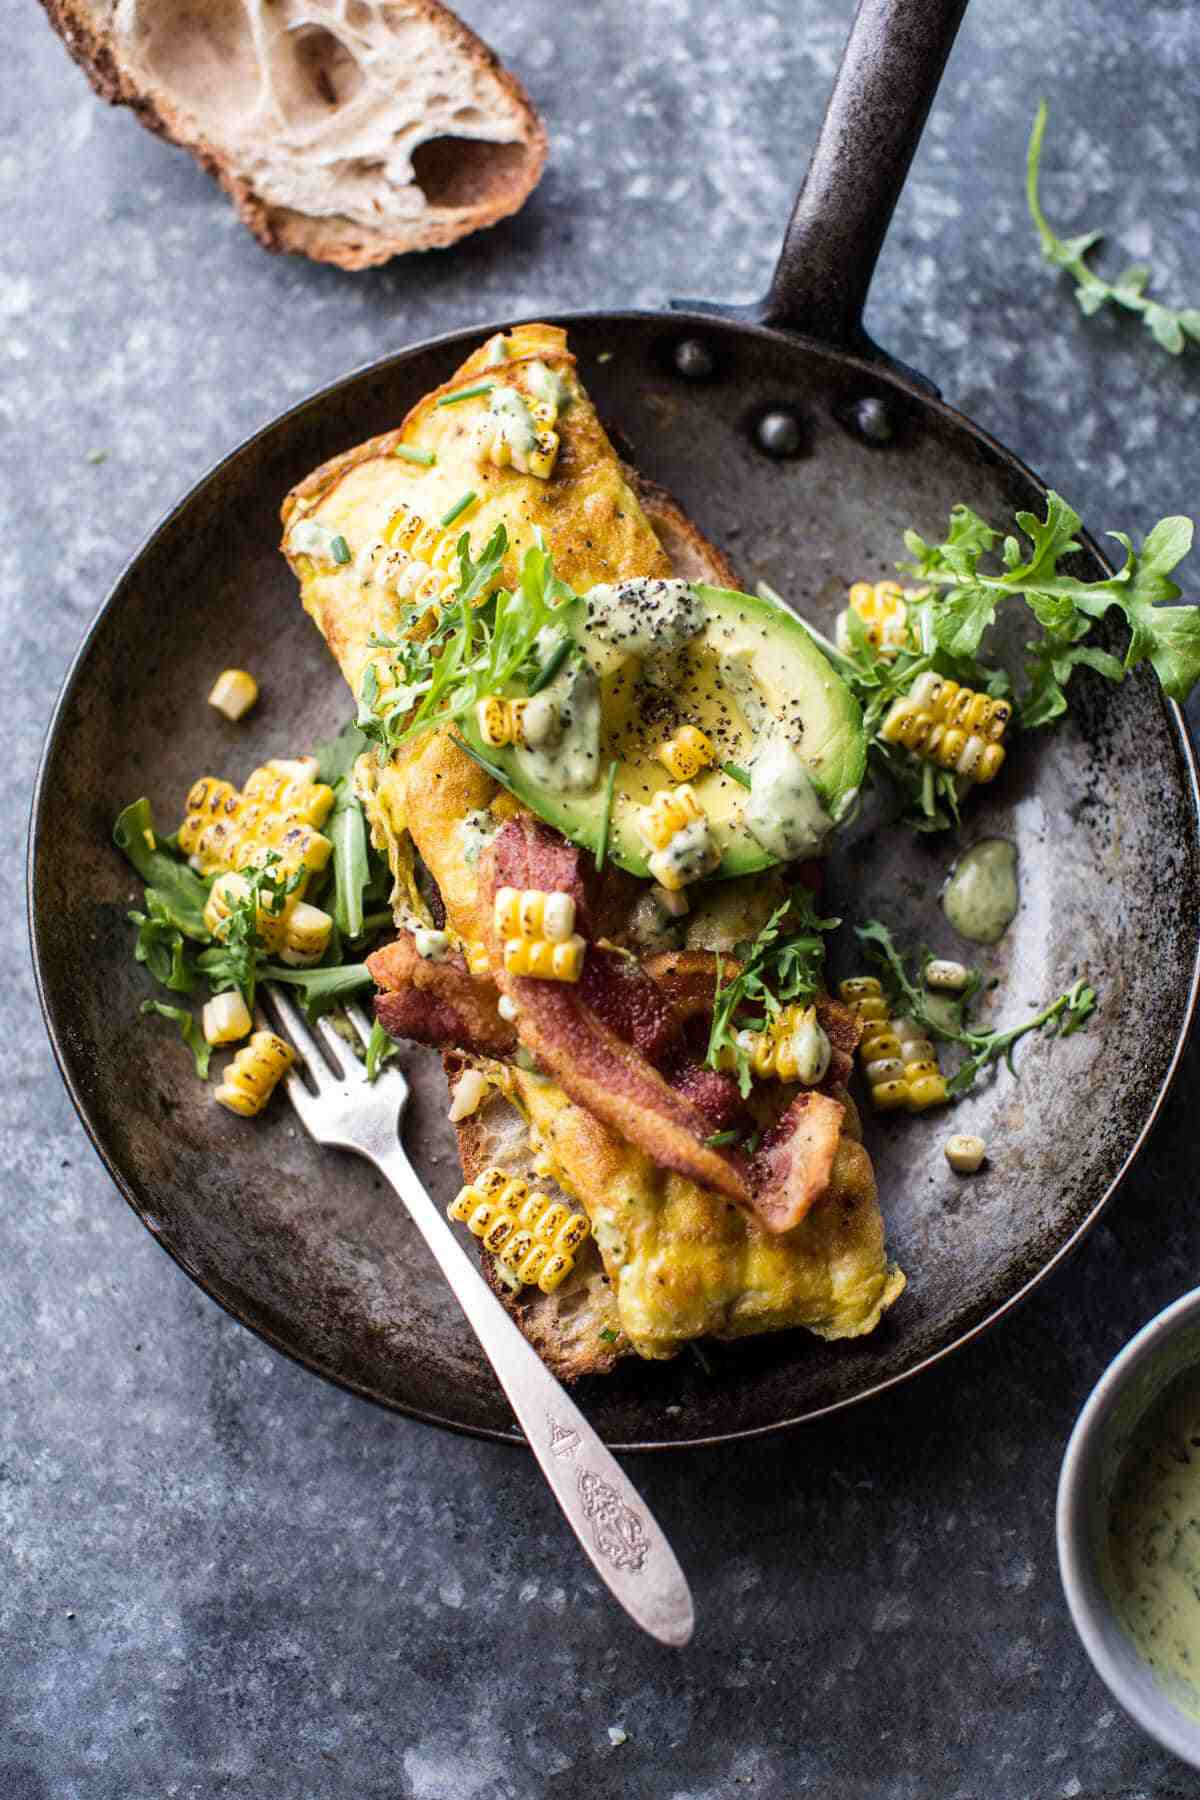 Save Your Brunch Money: Here's Exactly How to Make an Omelet Like a Pro